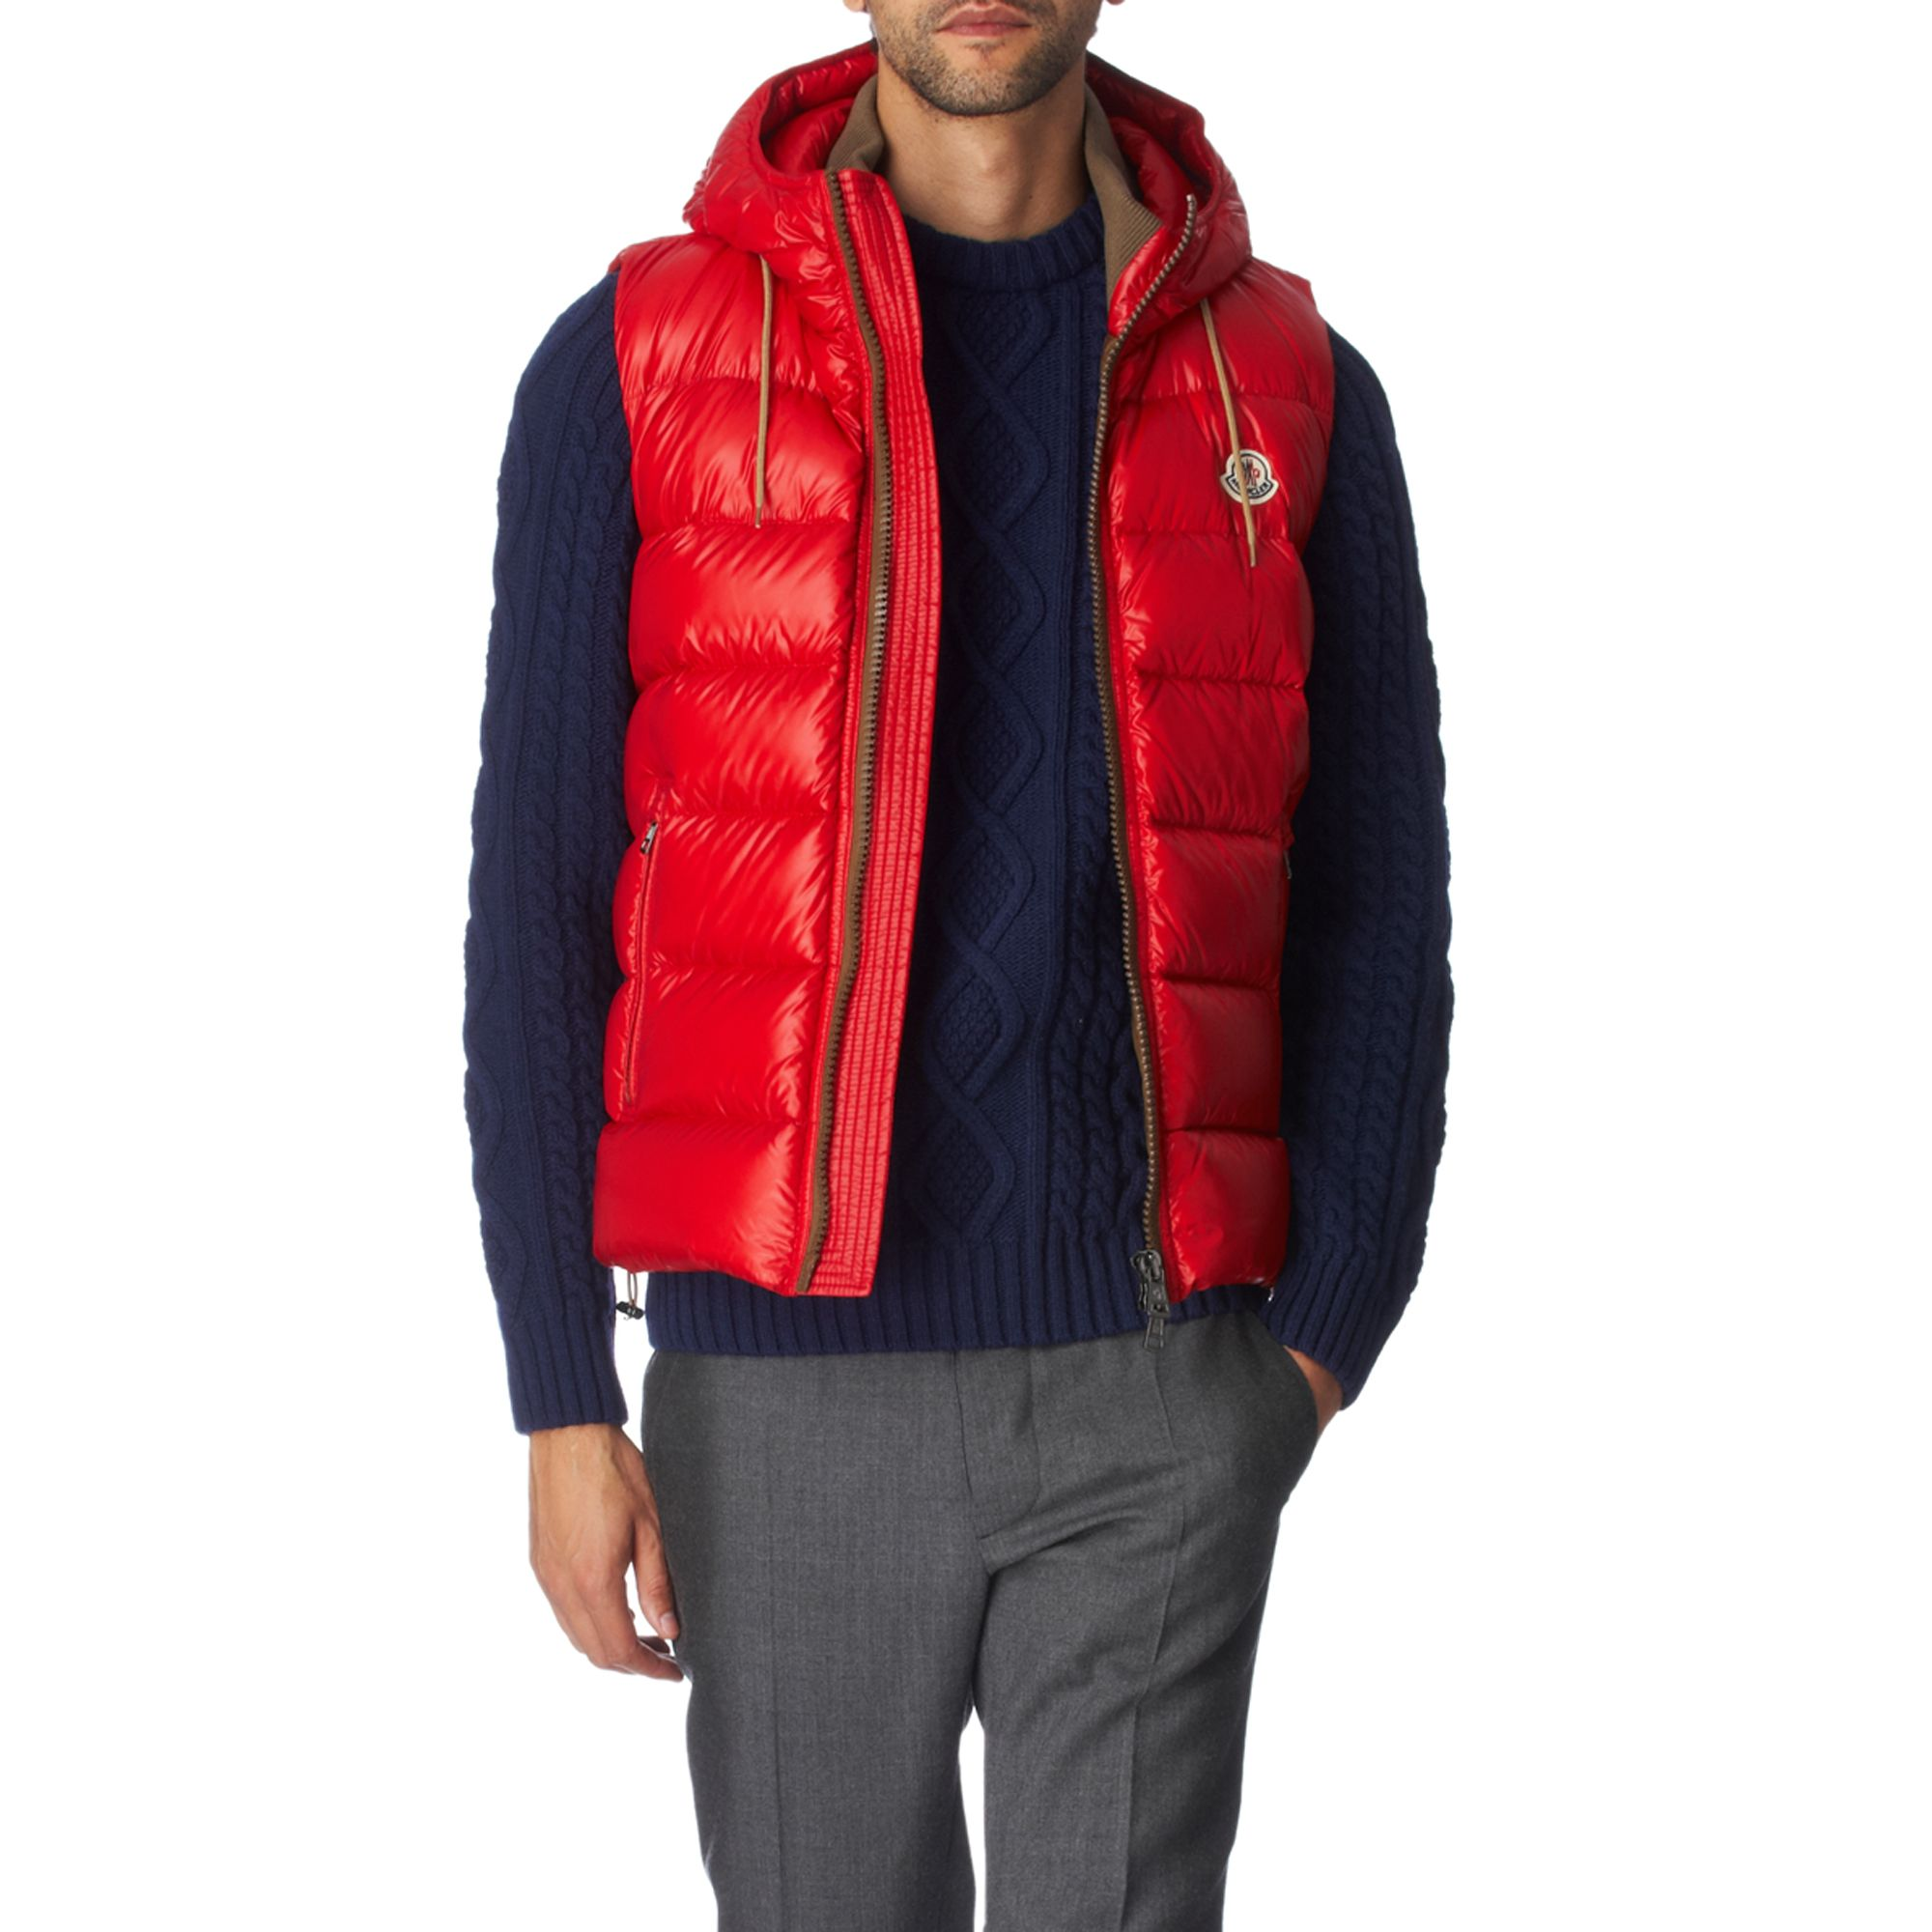 53db3a79ba38 Men Men Men Lyst Shiny Moncler In Red Gilet Gilet Gilet For Padded ...